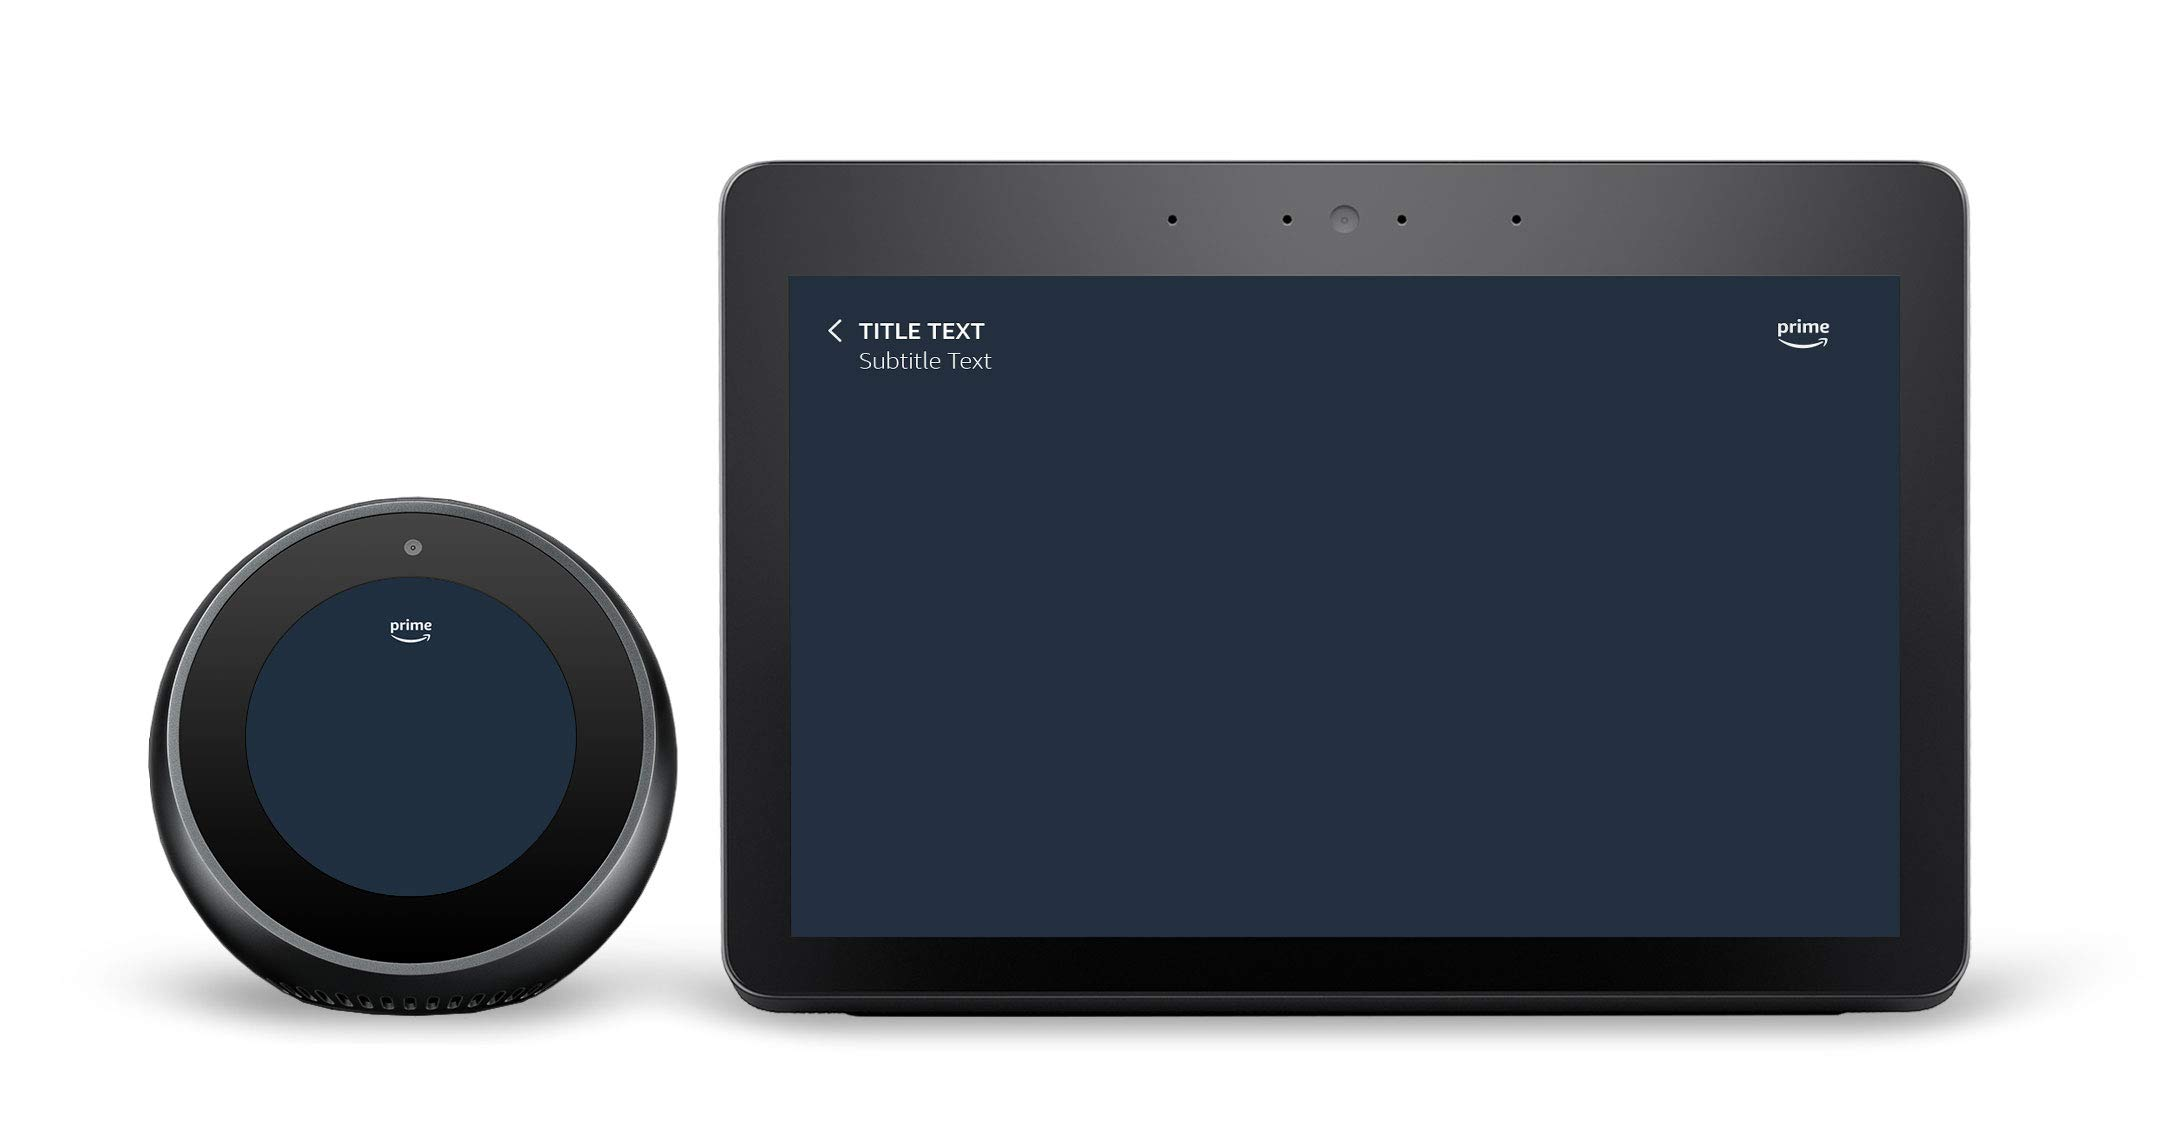 Image of a round and square hub device displaying the prime logo and Amazon Ember font at the top of the screen